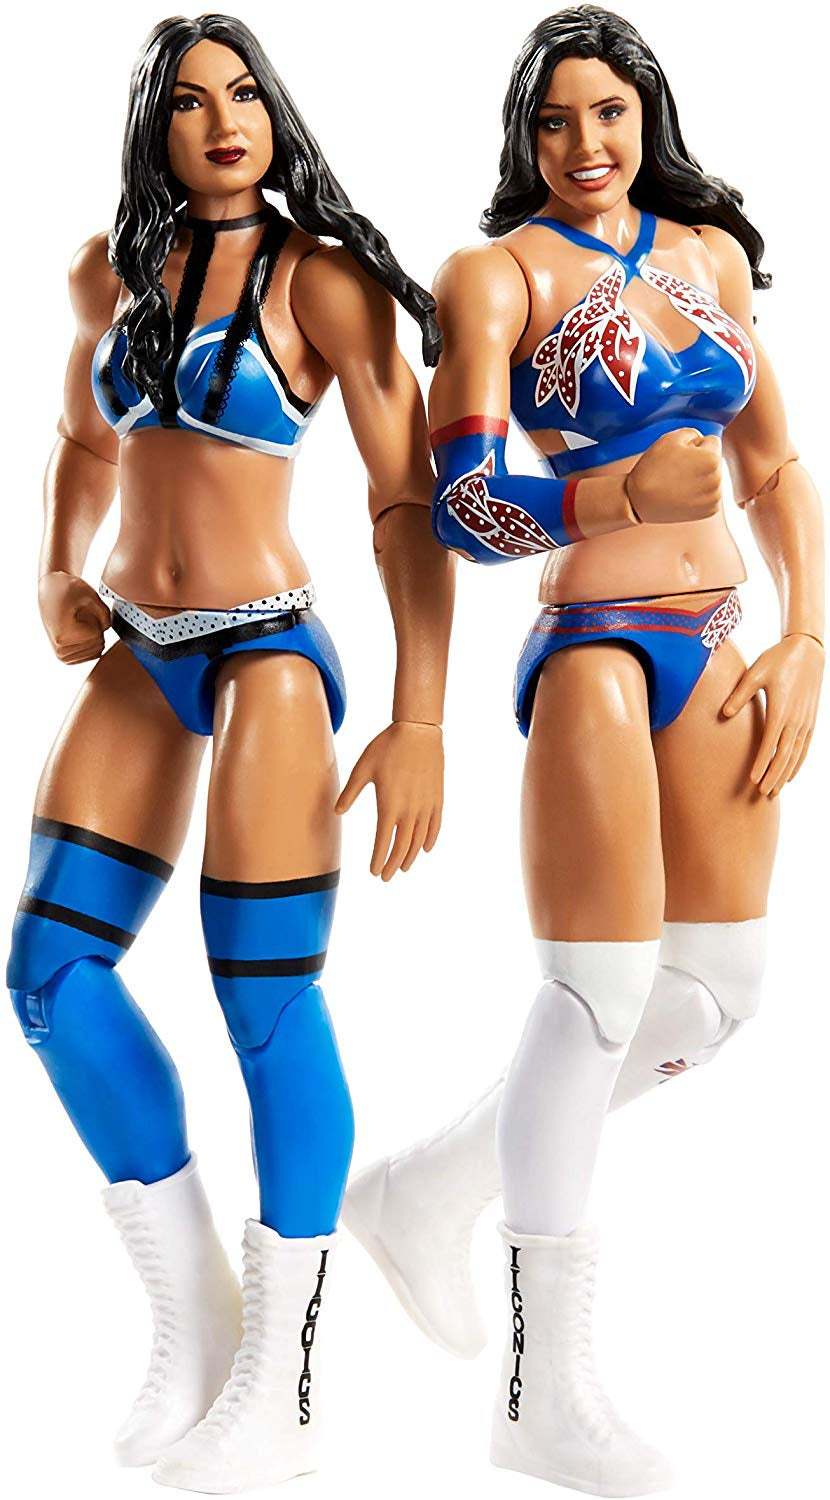 WWE Wrestling Figure Battle Pack Billie Kay And Peyton Royce